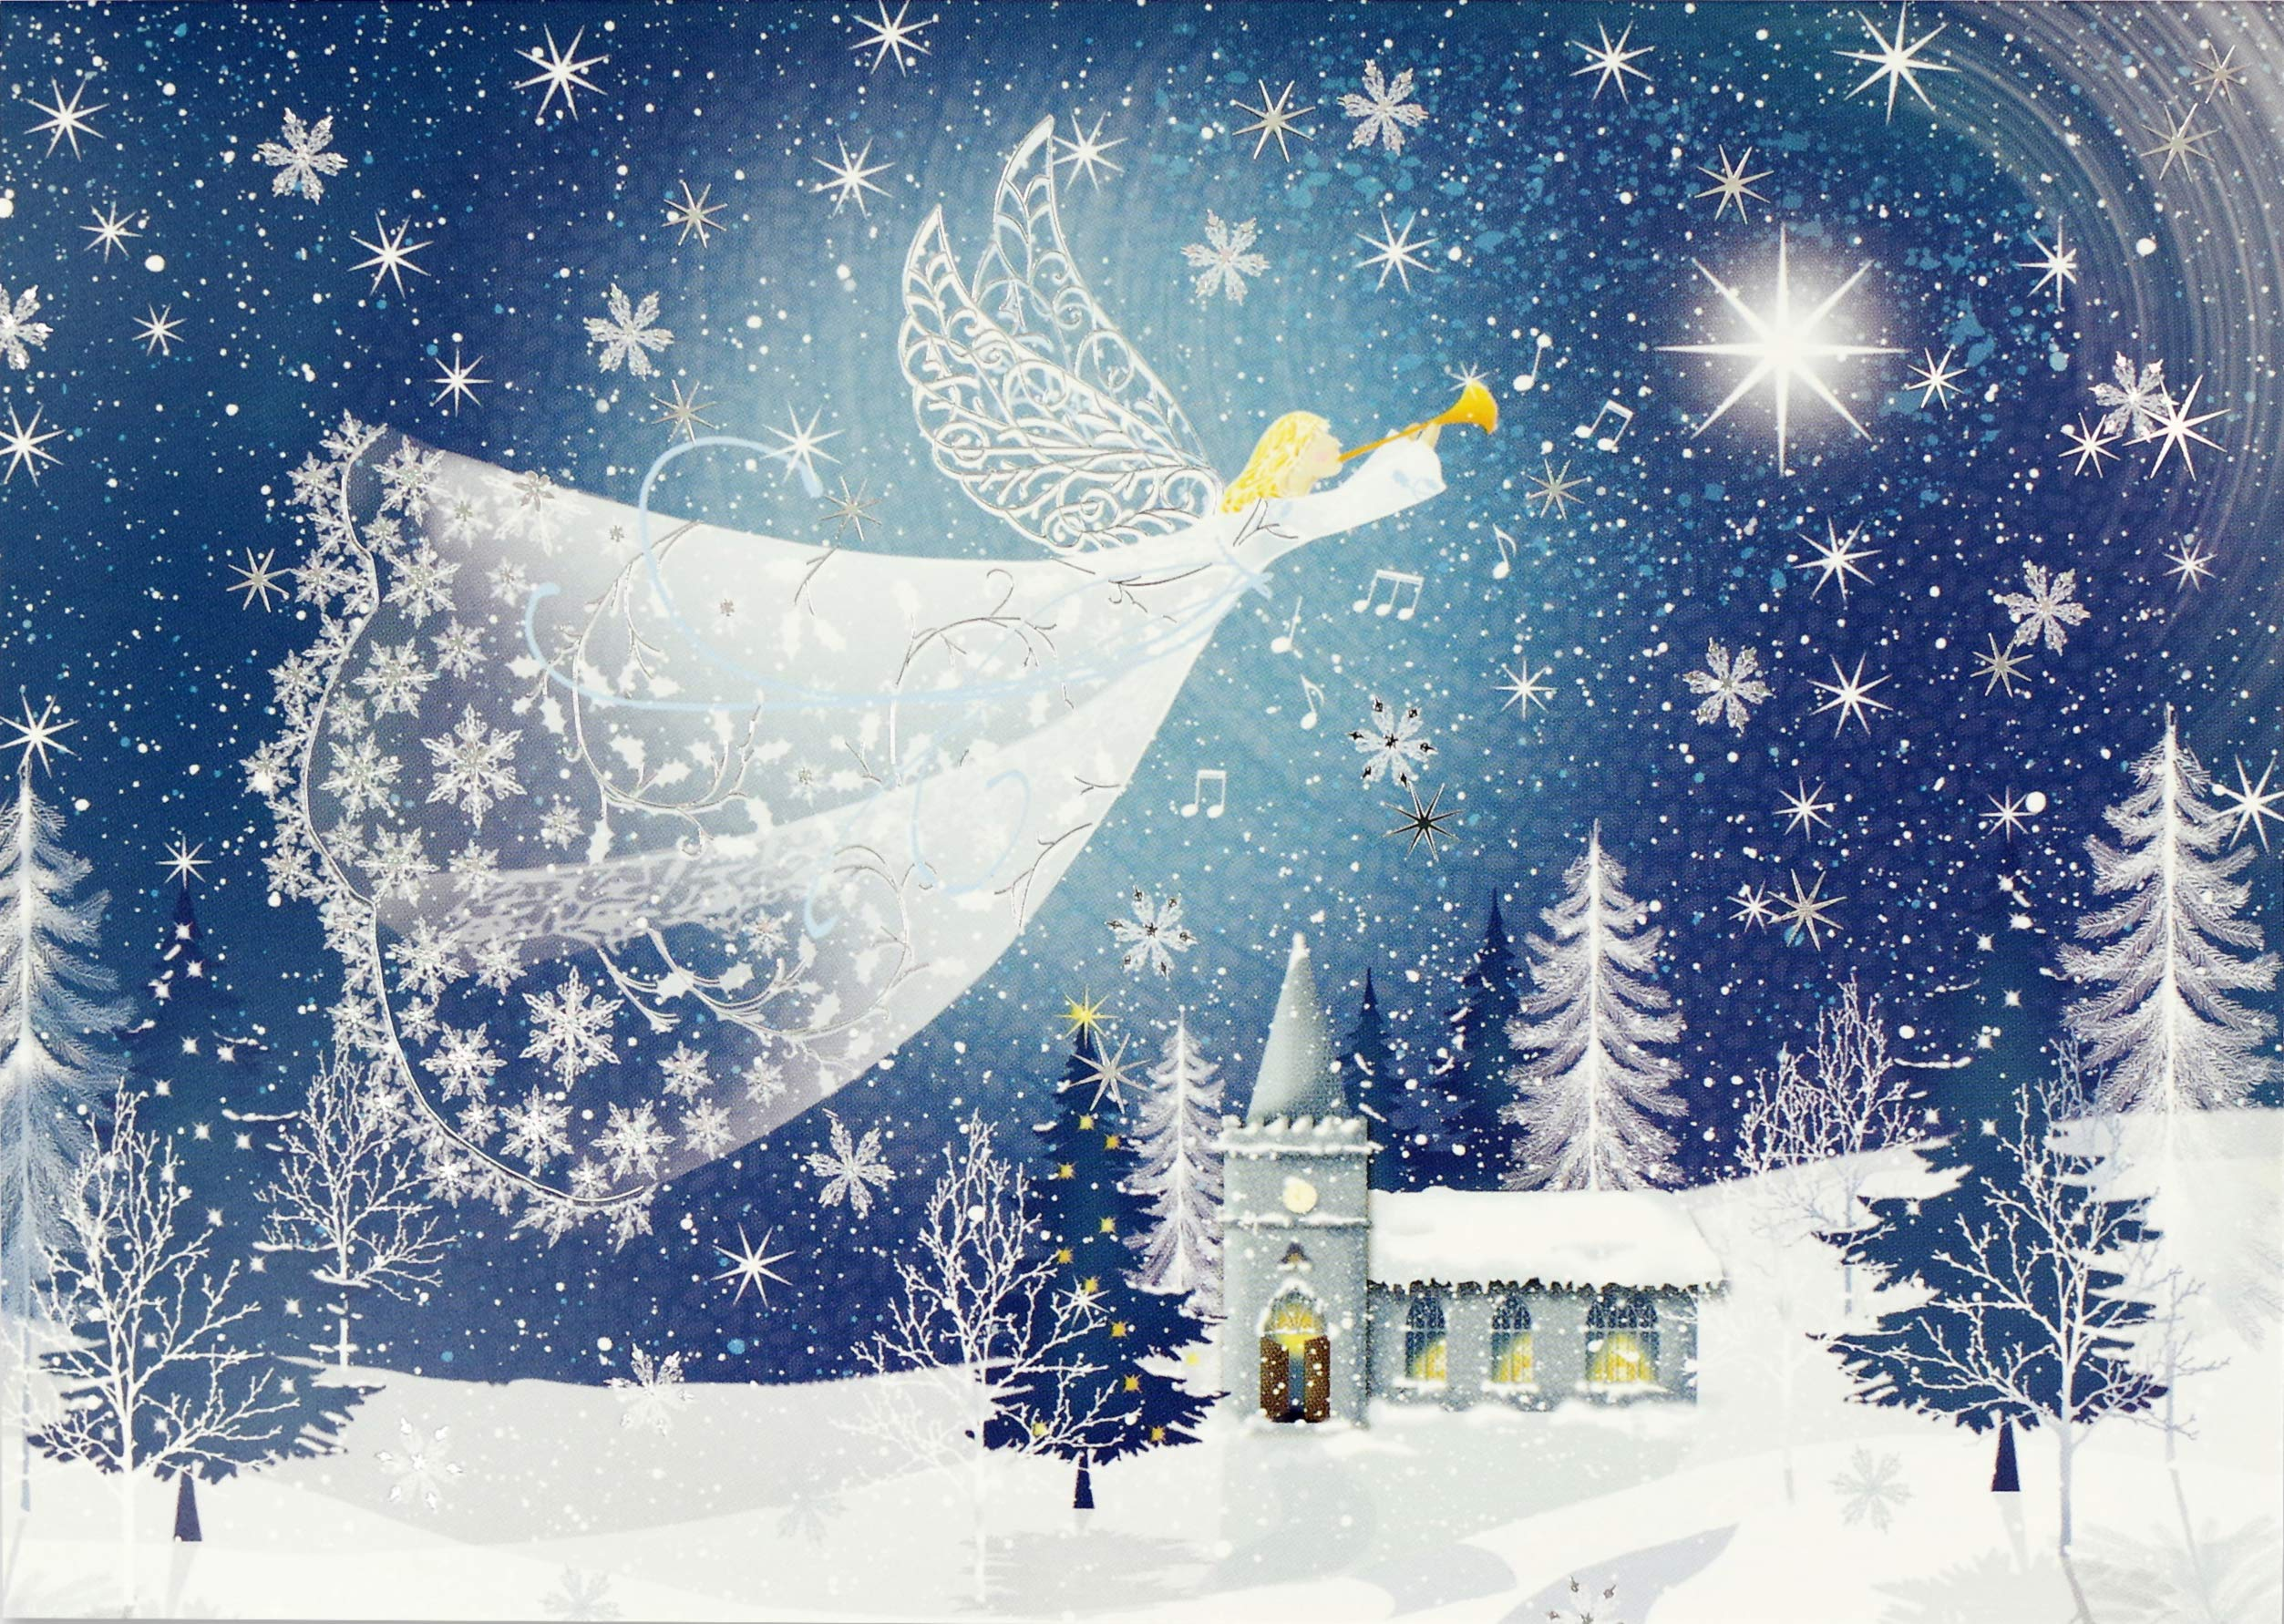 Angel Christmas Cards 2020 Tidings of Joy Deluxe Boxed Holiday Cards (Christmas Cards